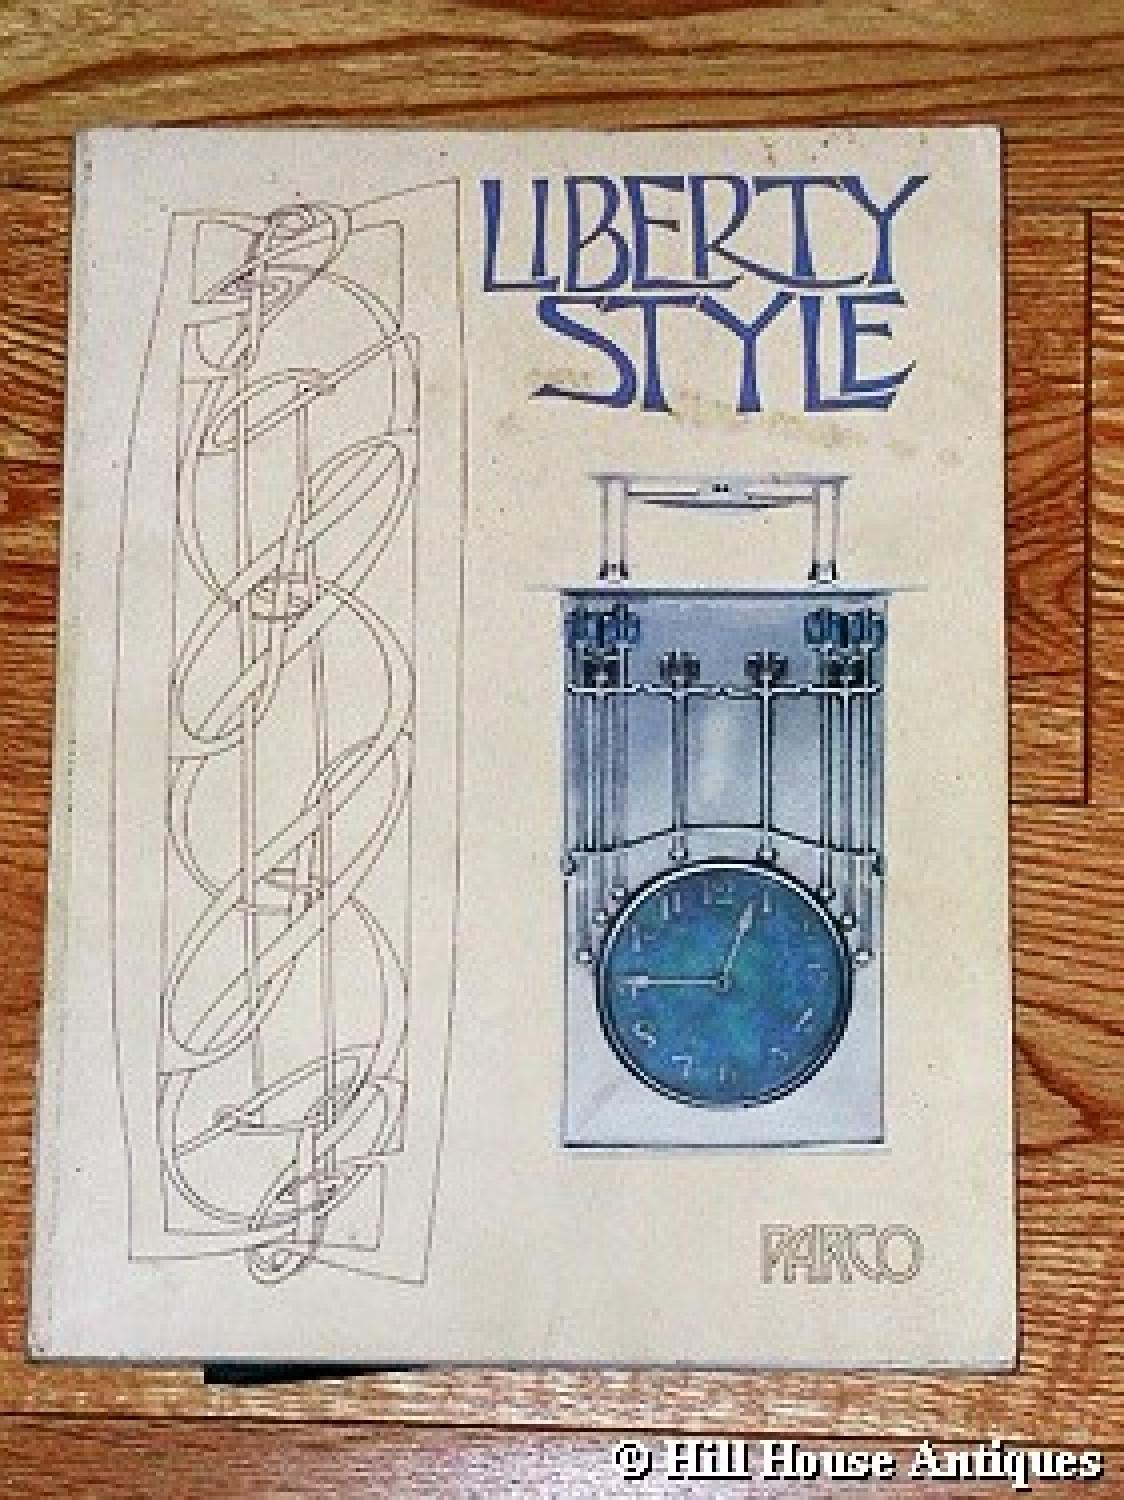 Liberty Style Arwas catalogue